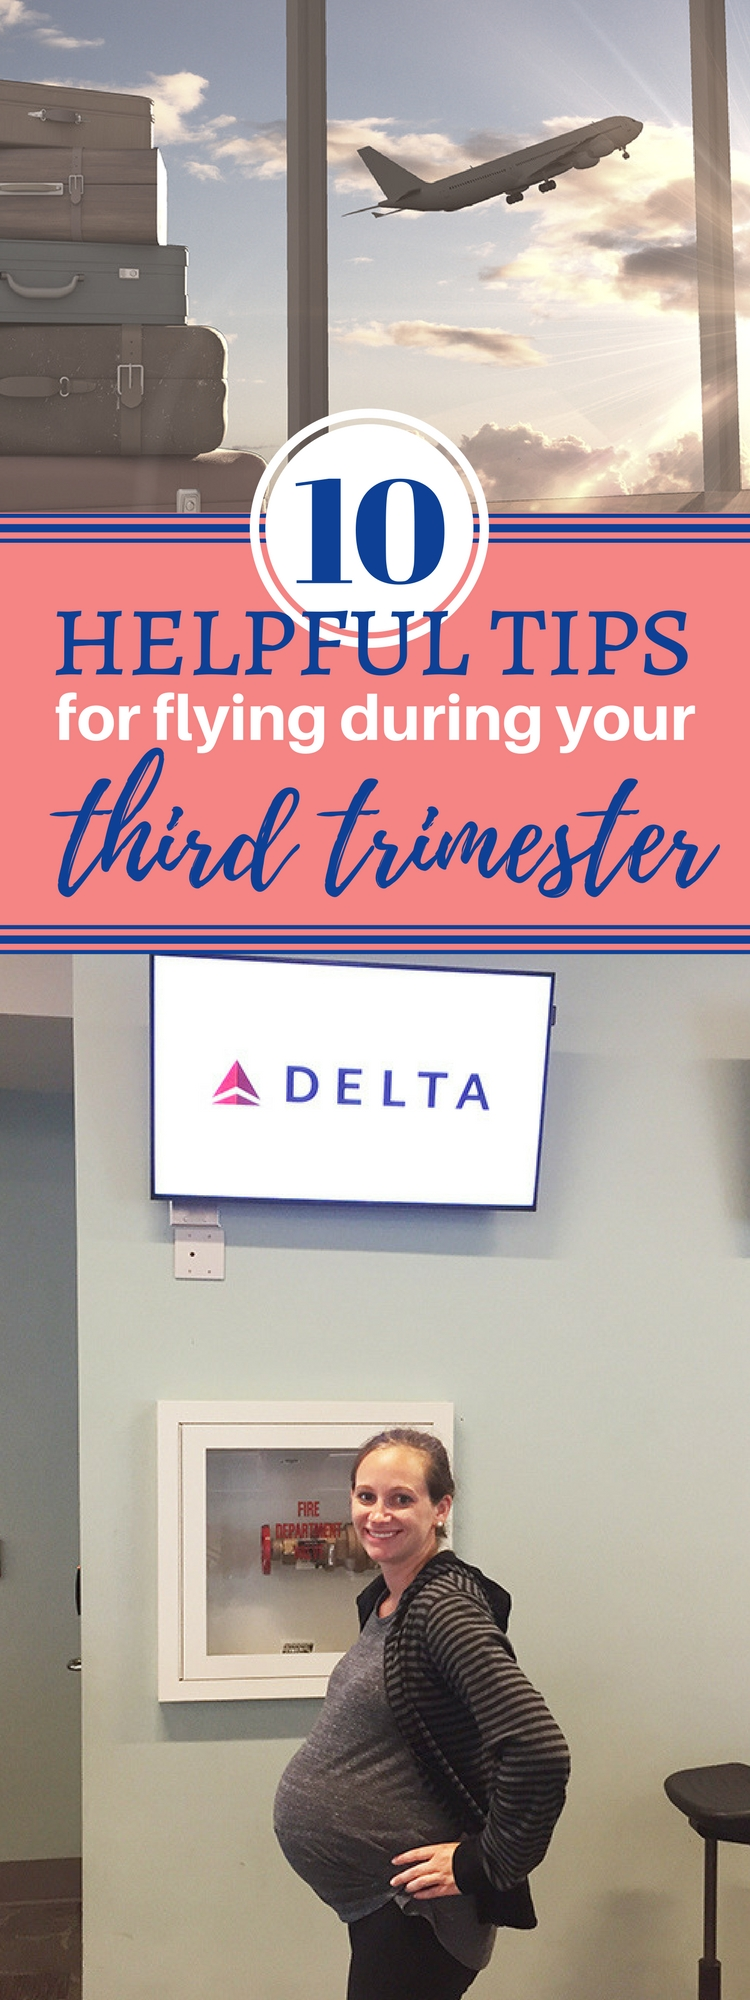 Is flying during the third trimester okay? Check out these tips third trimester travel from a mom who flew throughout all 3 trimesters.